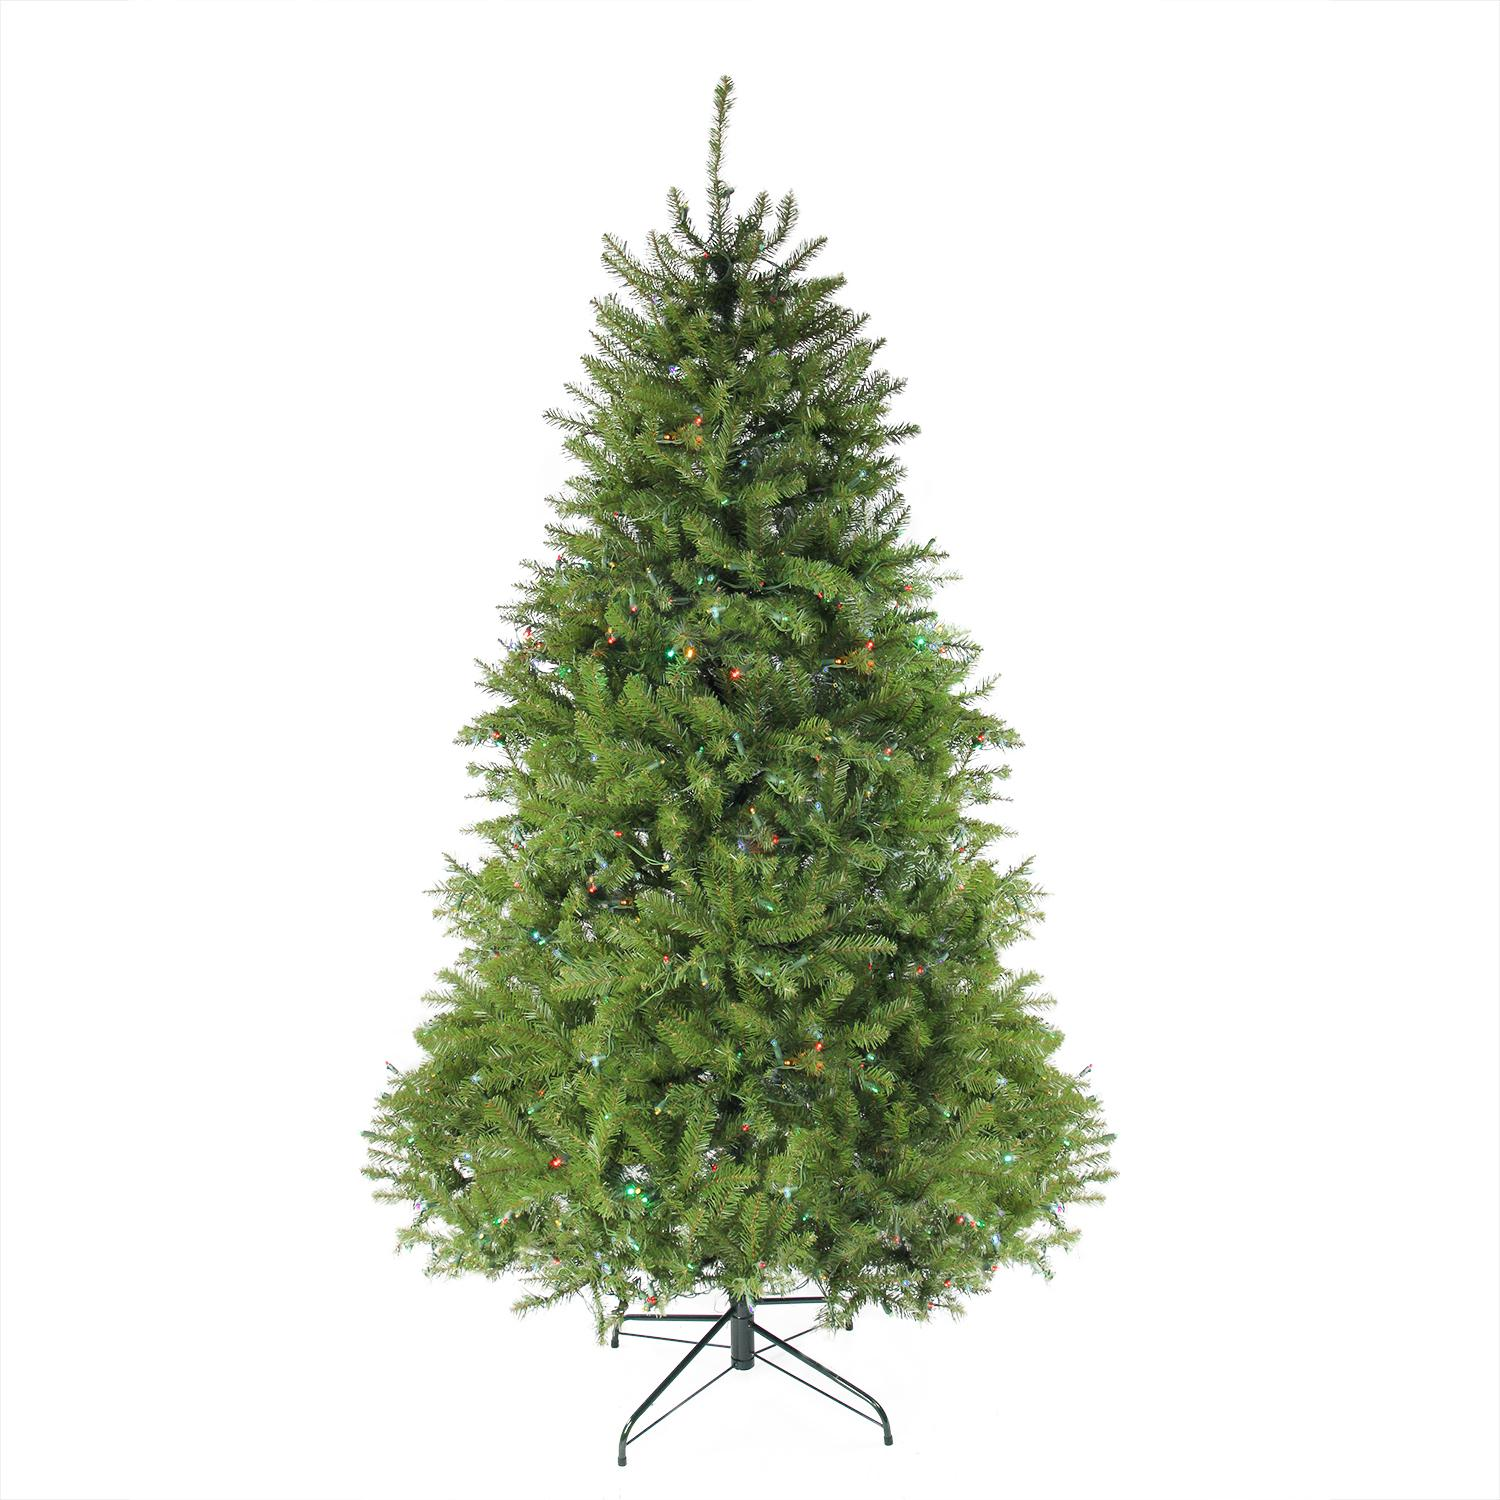 10' Pre-Lit Northern Pine Full Artificial Christmas Tree - Multi-Color Lights